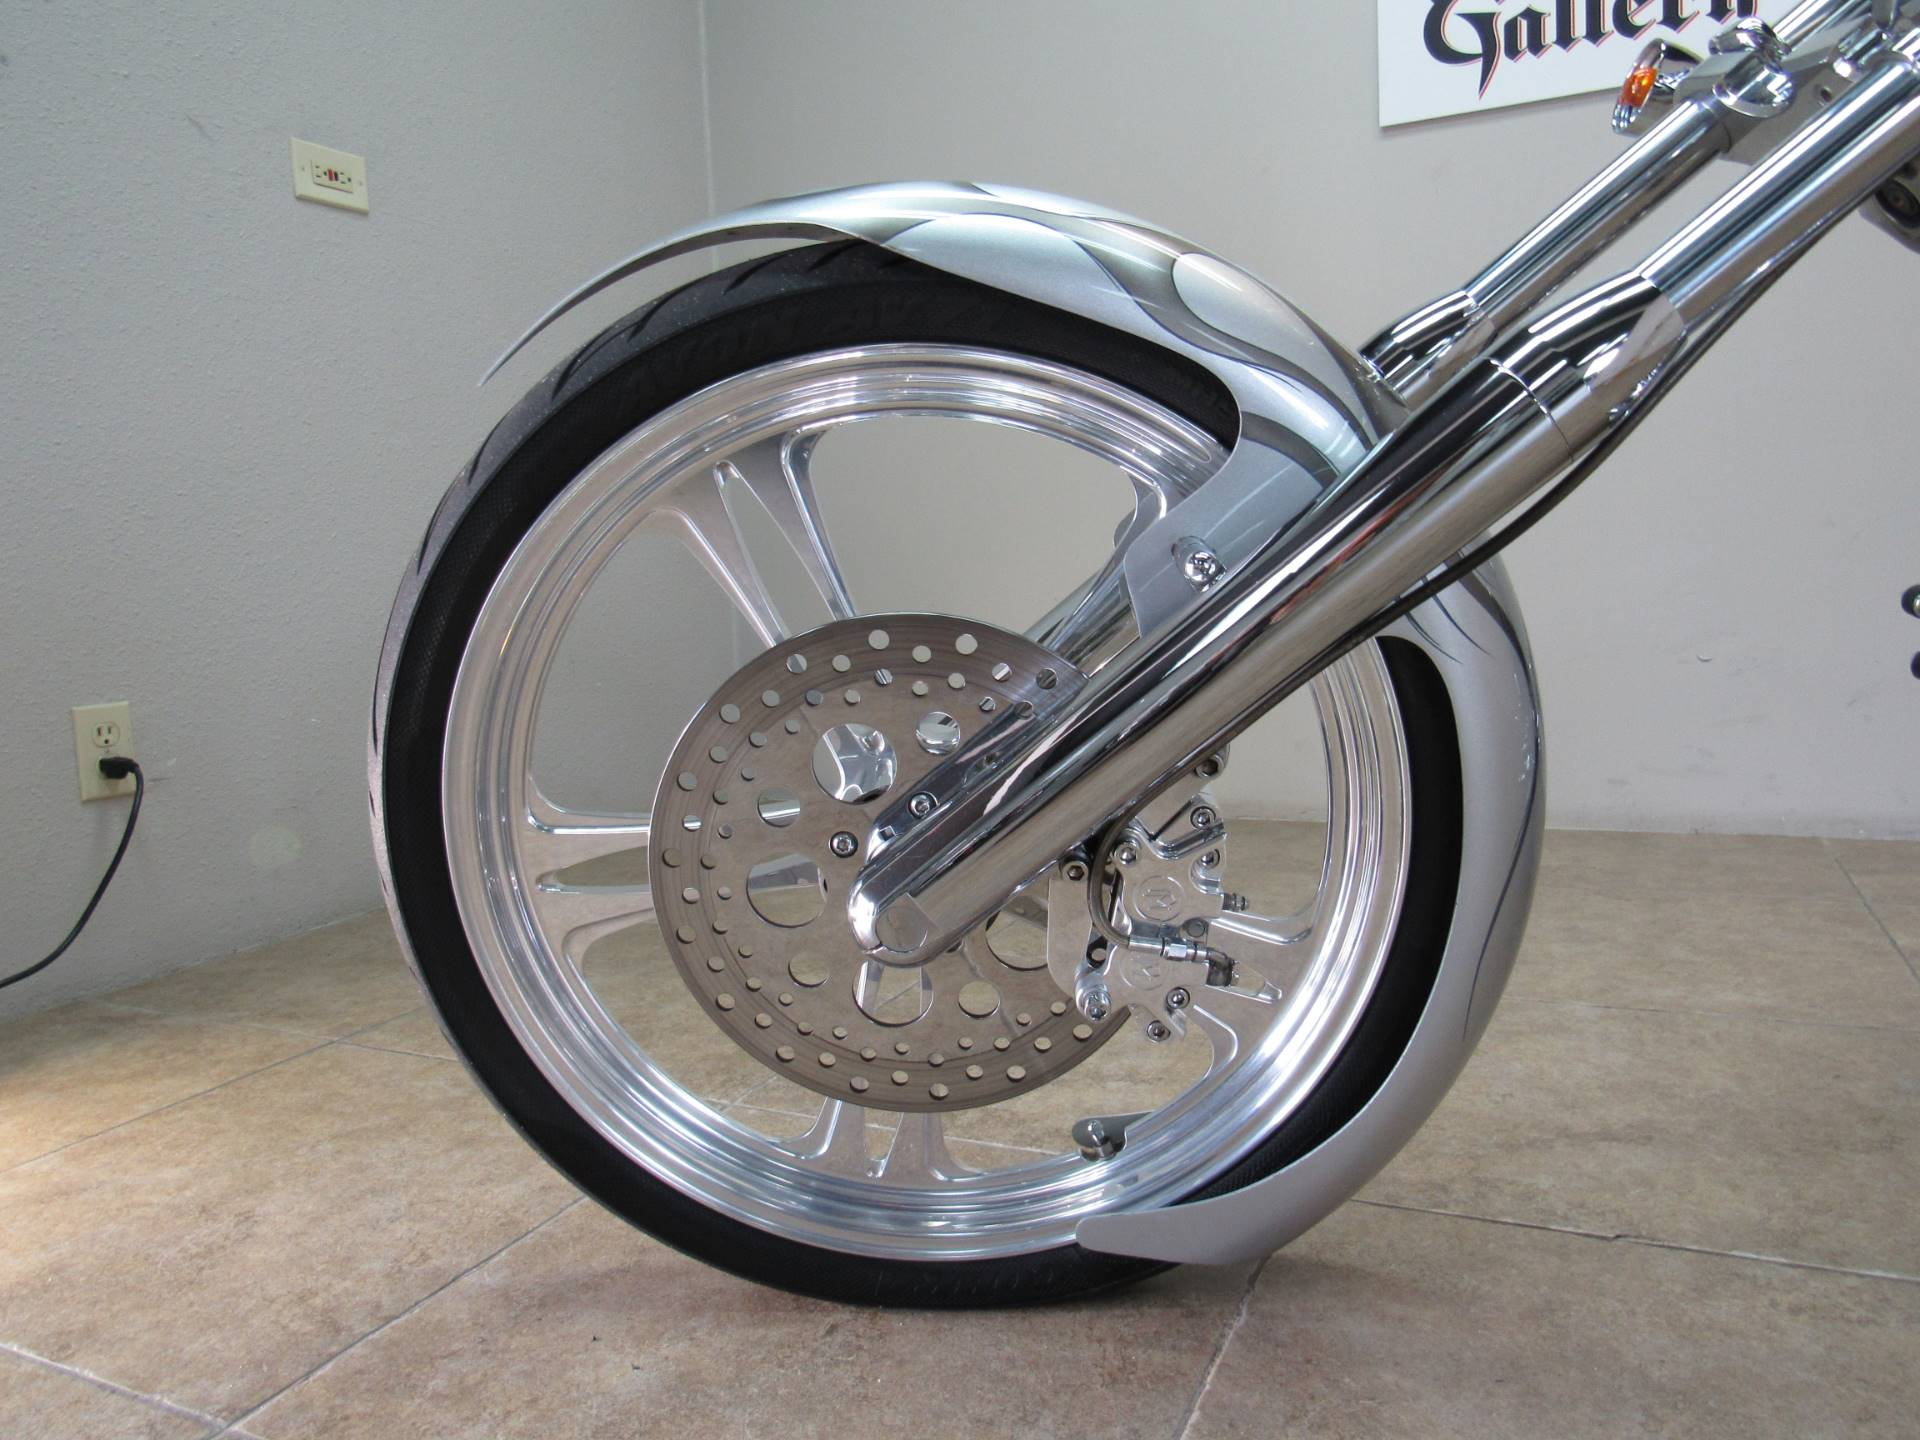 2006 Big Bear Choppers Sled Prostreet (CA) - [SLEDPROSTREET] - Silver in Temecula, California - Photo 17